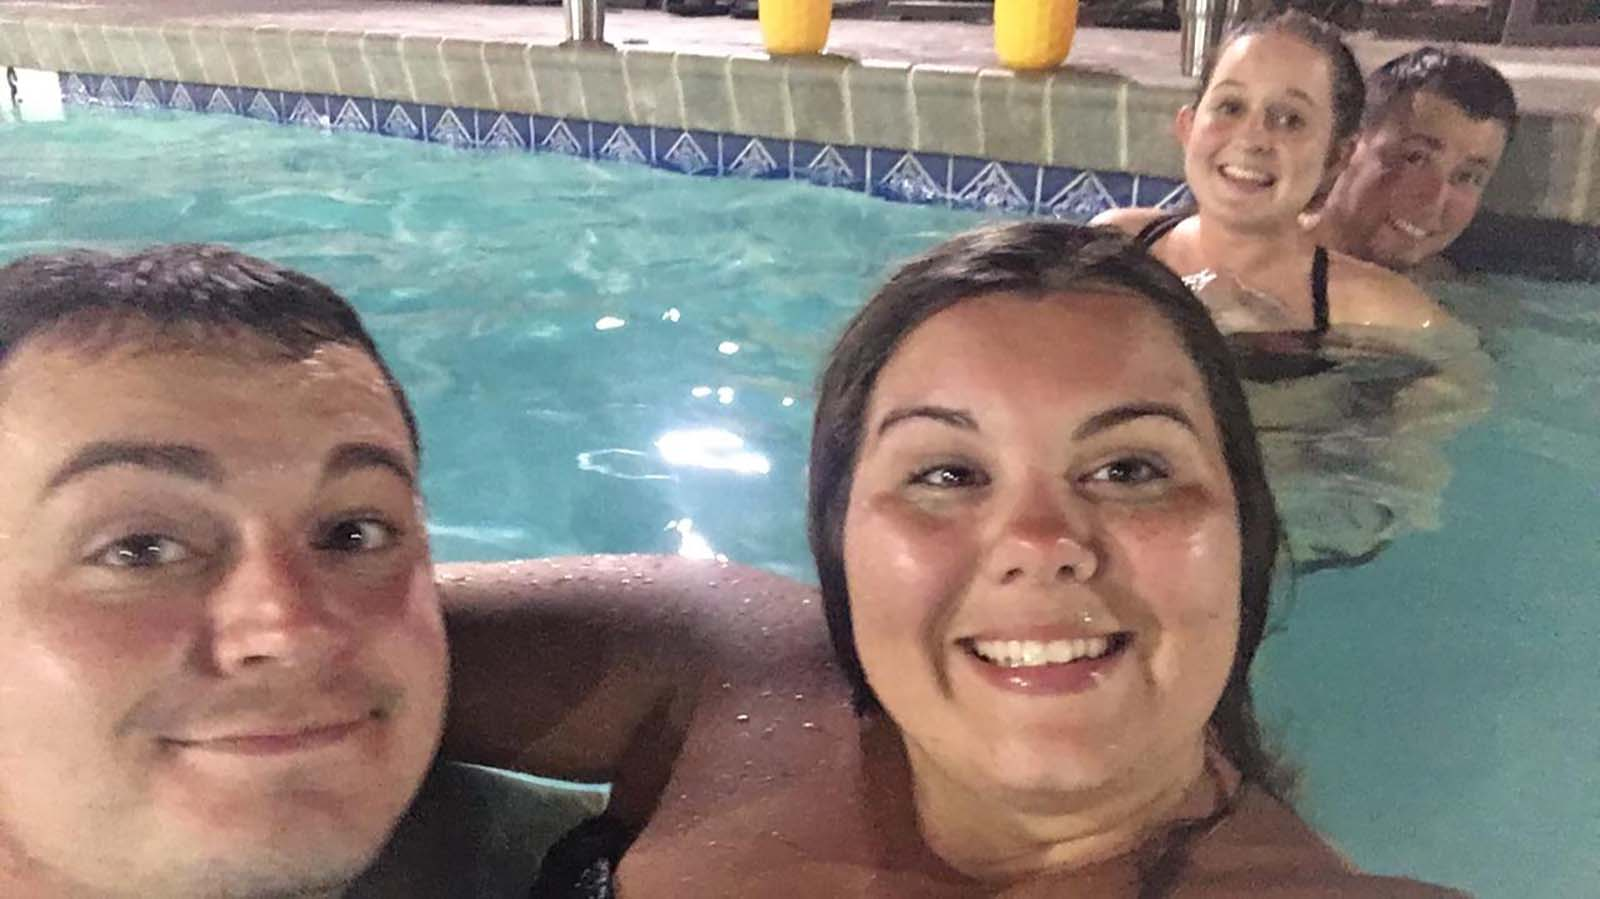 Couples in pool together